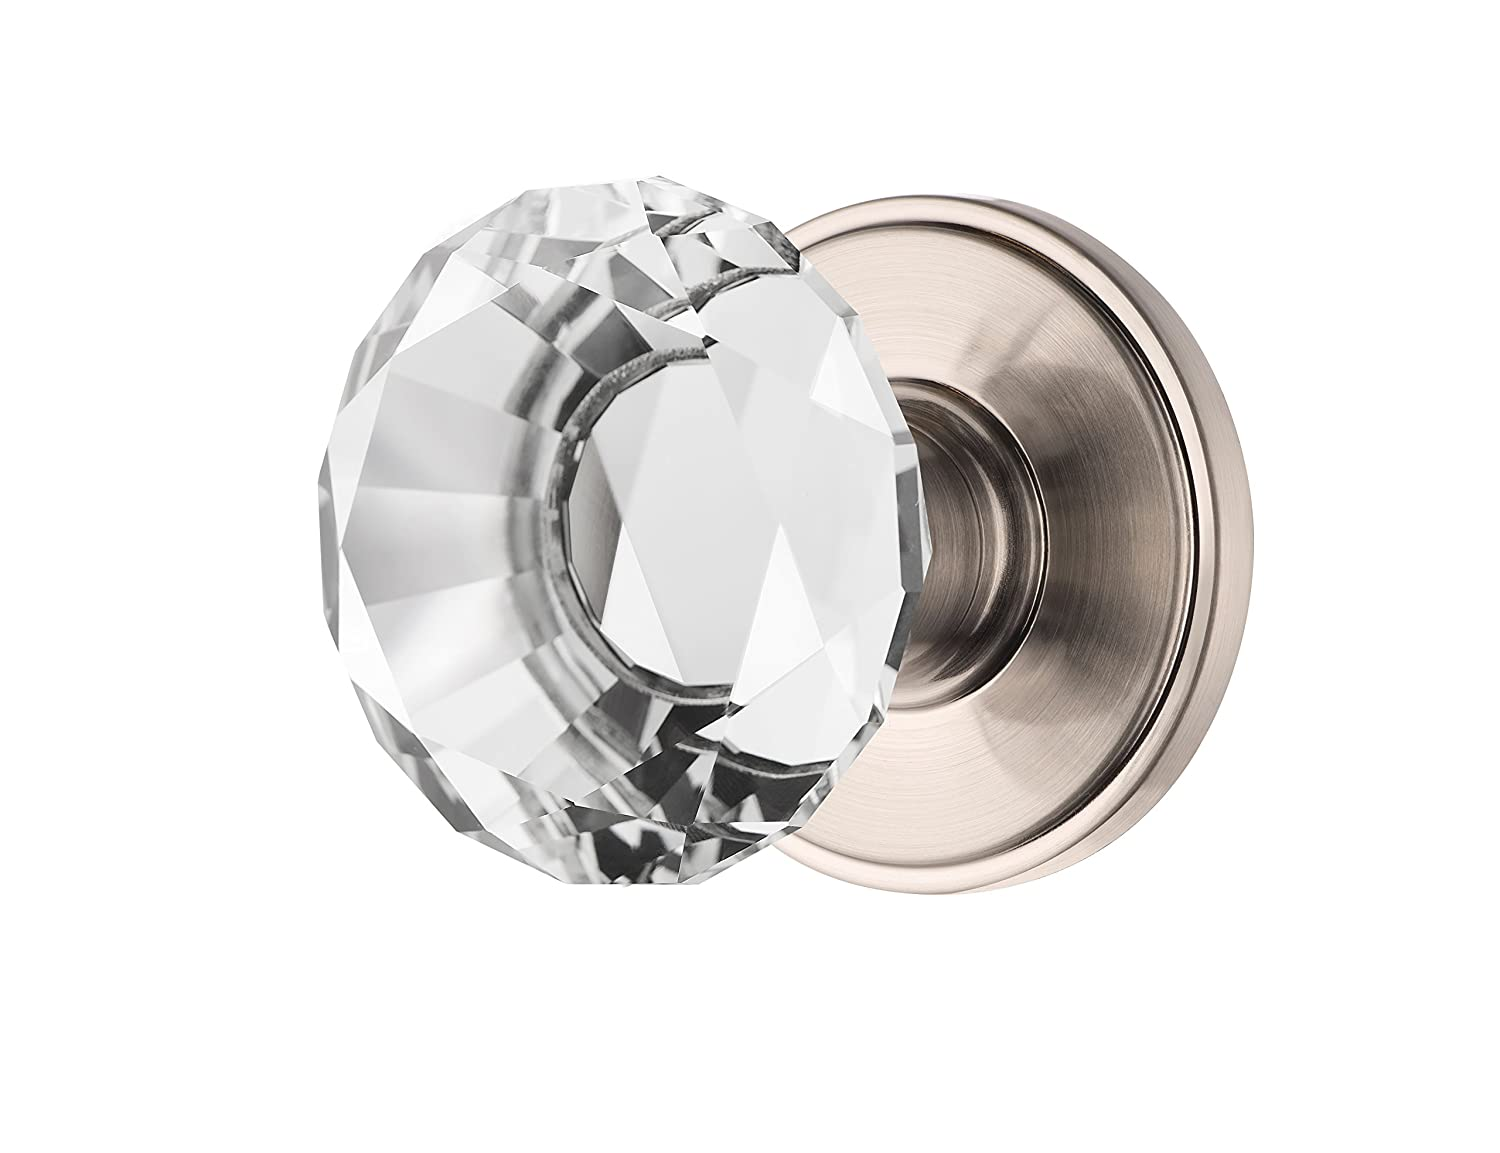 Decor Living, AMG and Enchante Accessories, Diamond Crystal Door Knobs, Passage Function for Hall and Closet, Venus Collection, Satin Nickel